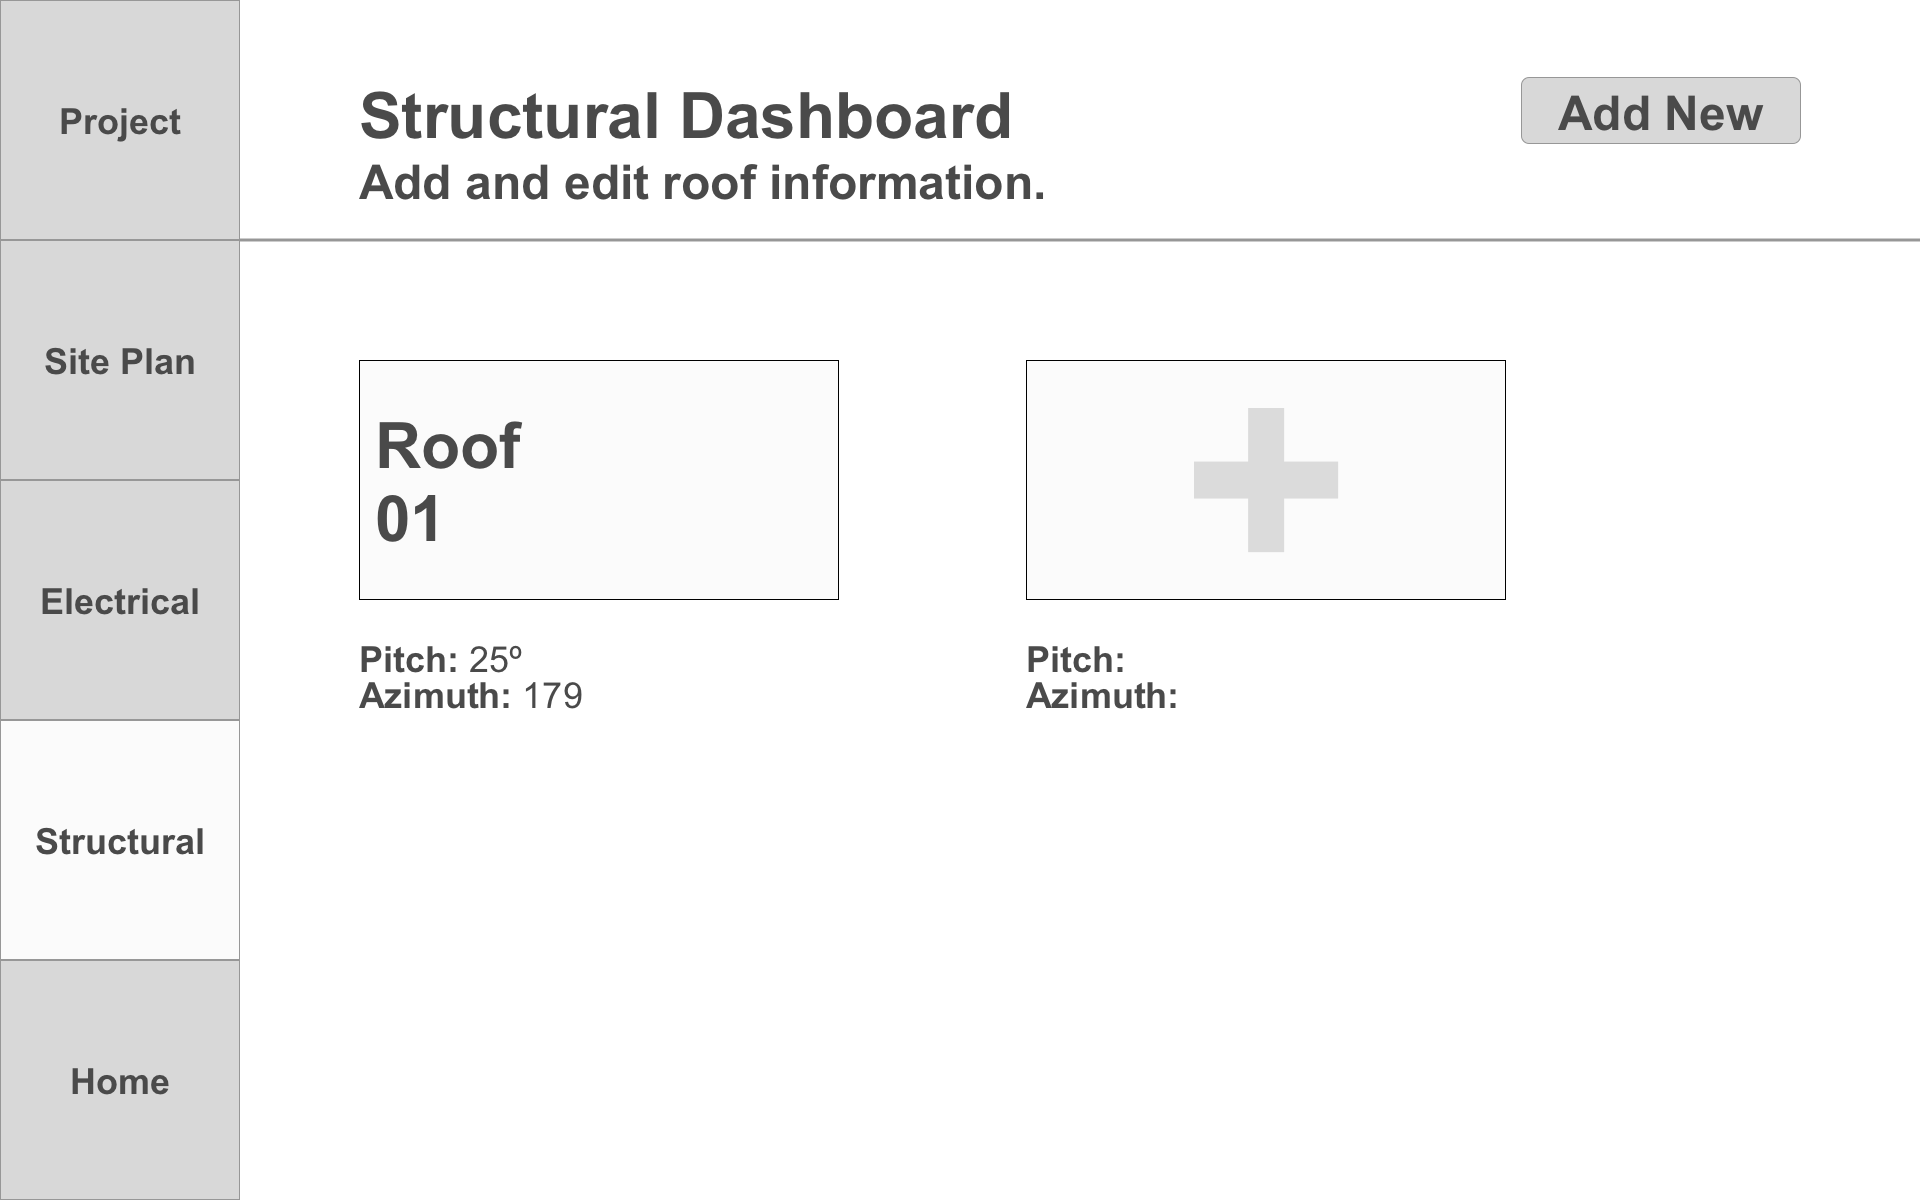 4.0.0_Structural_Dashboard.png